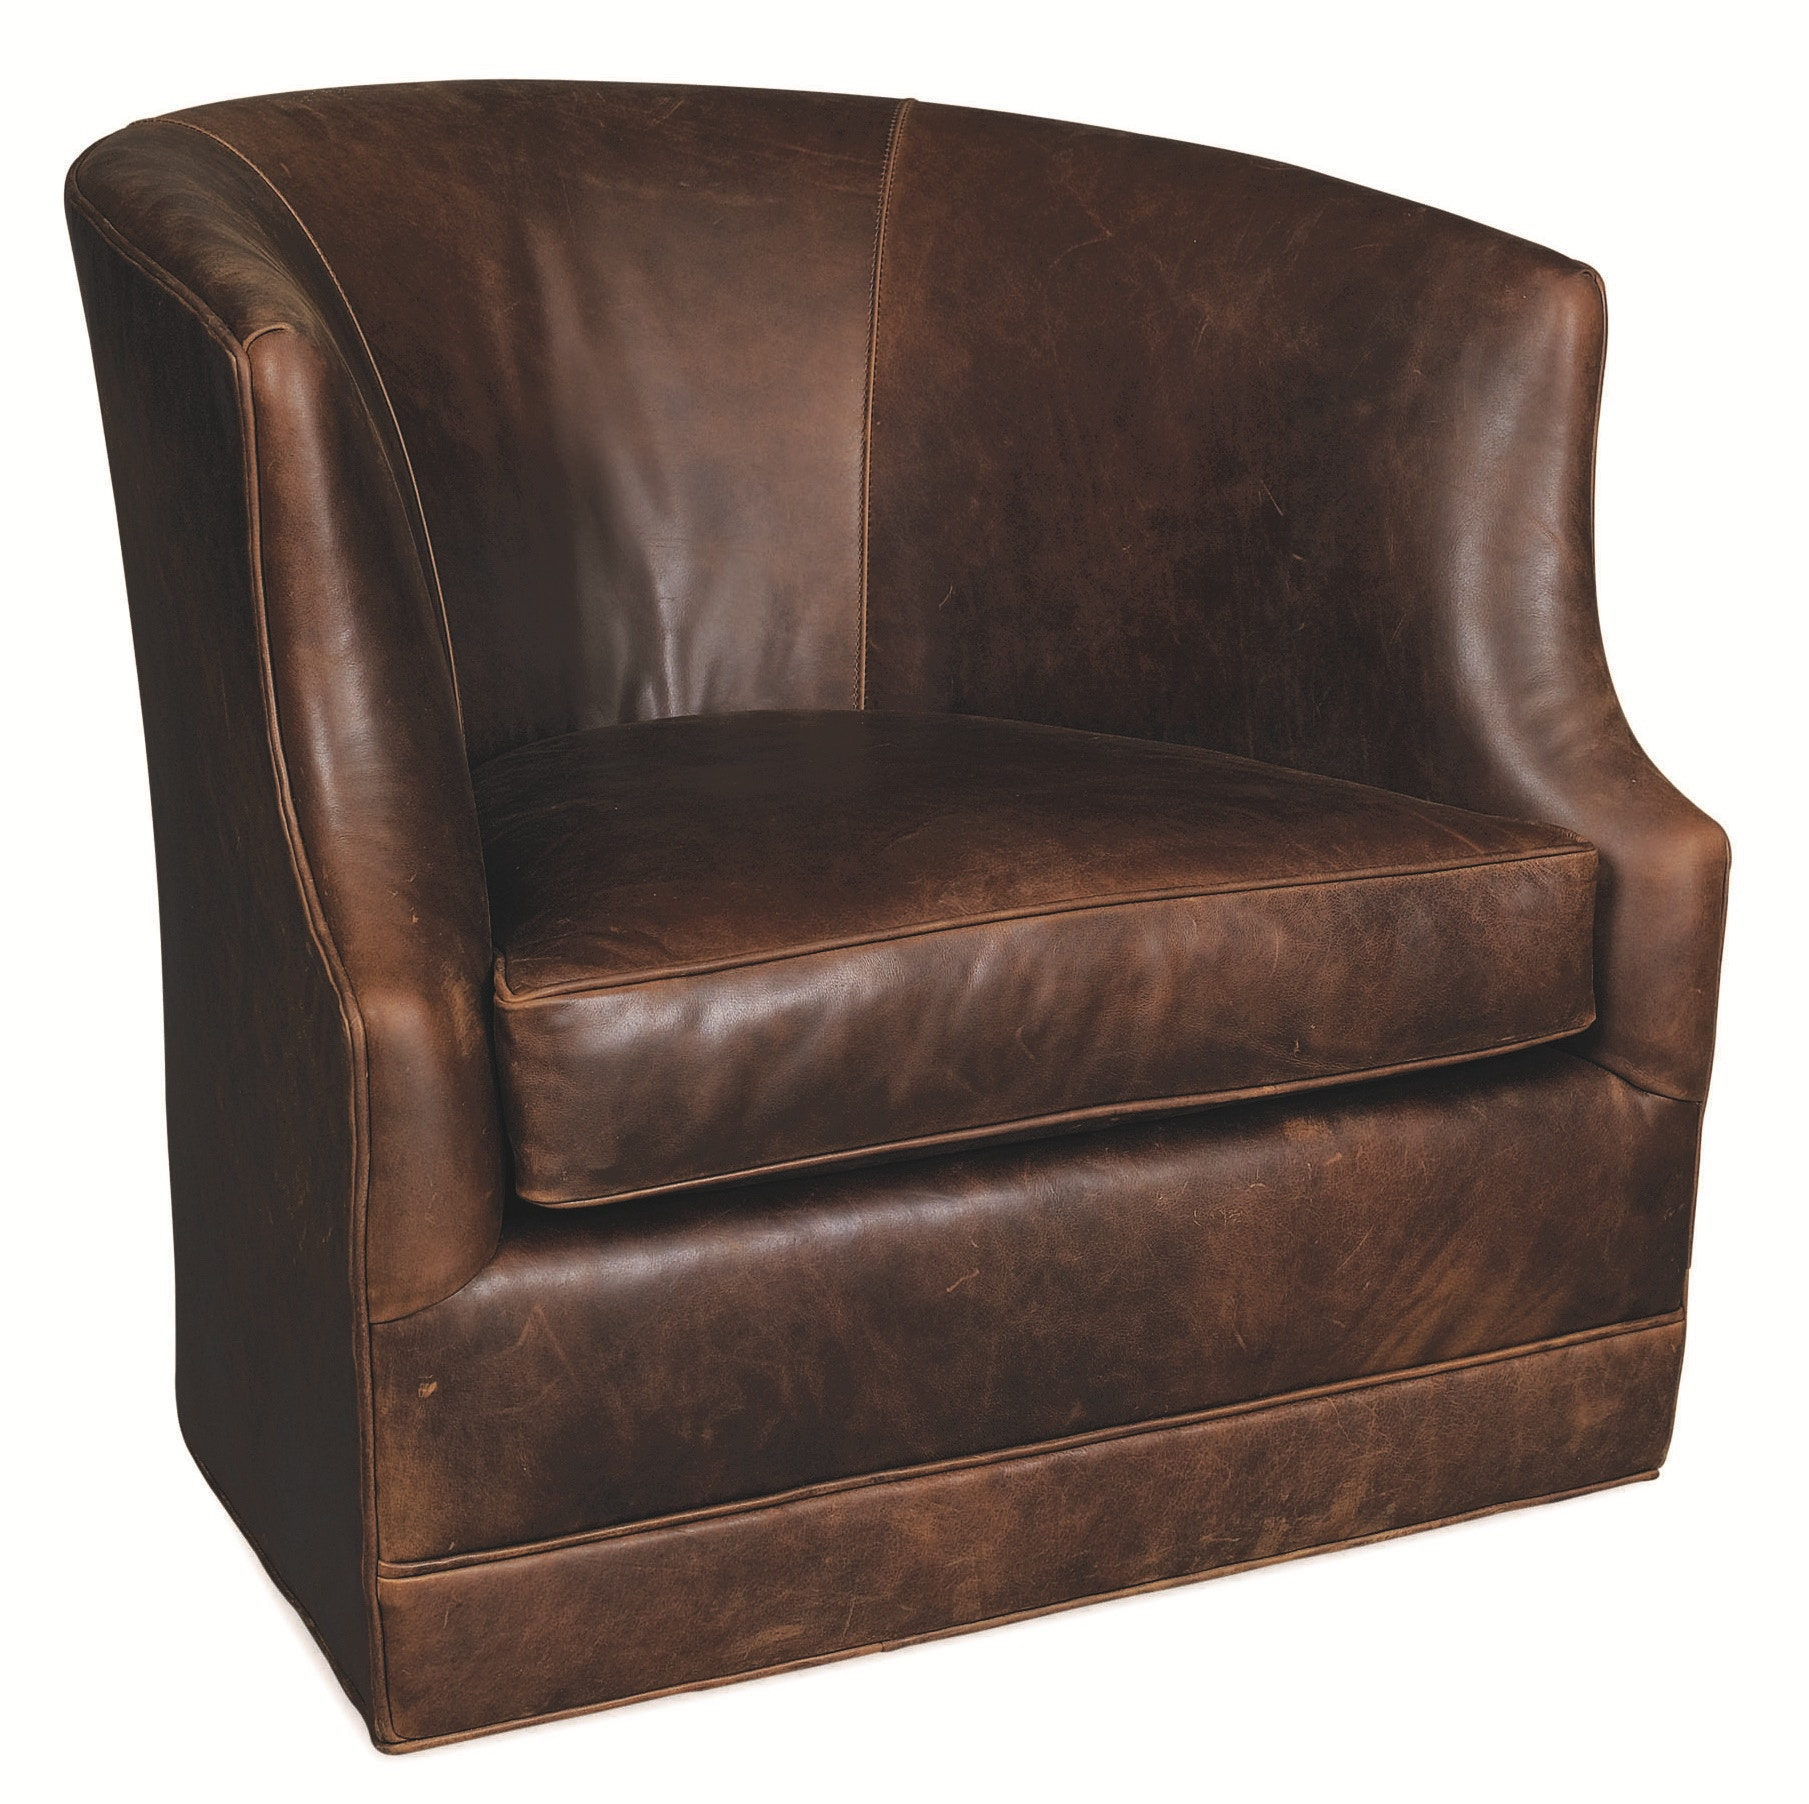 Lee Industries Leather Swivel Chair L3009 01SW